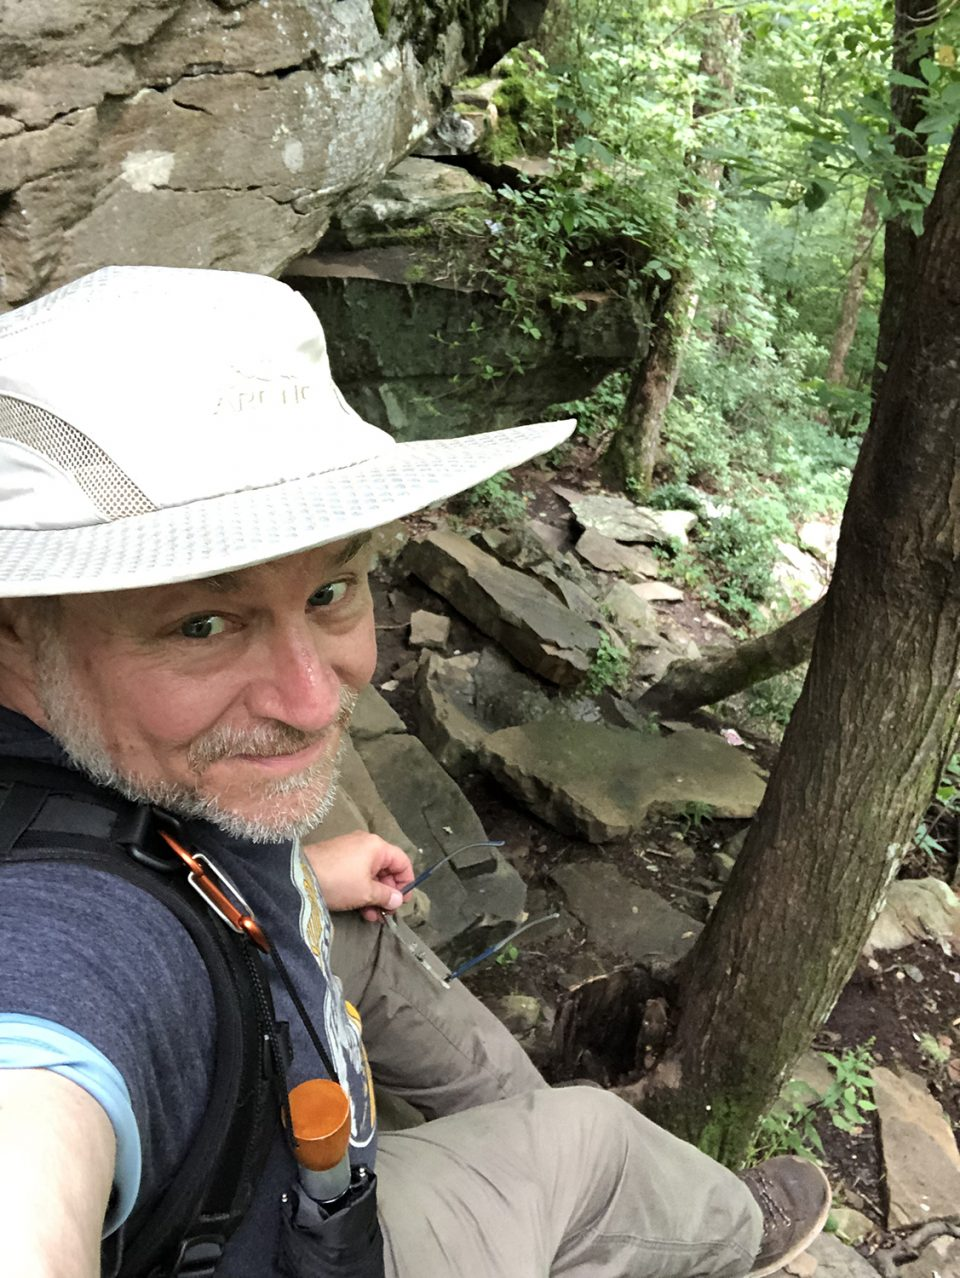 Yours truly, sitting on a big boulder just before a shimmy down. The rock shelter is just to my immediate left.